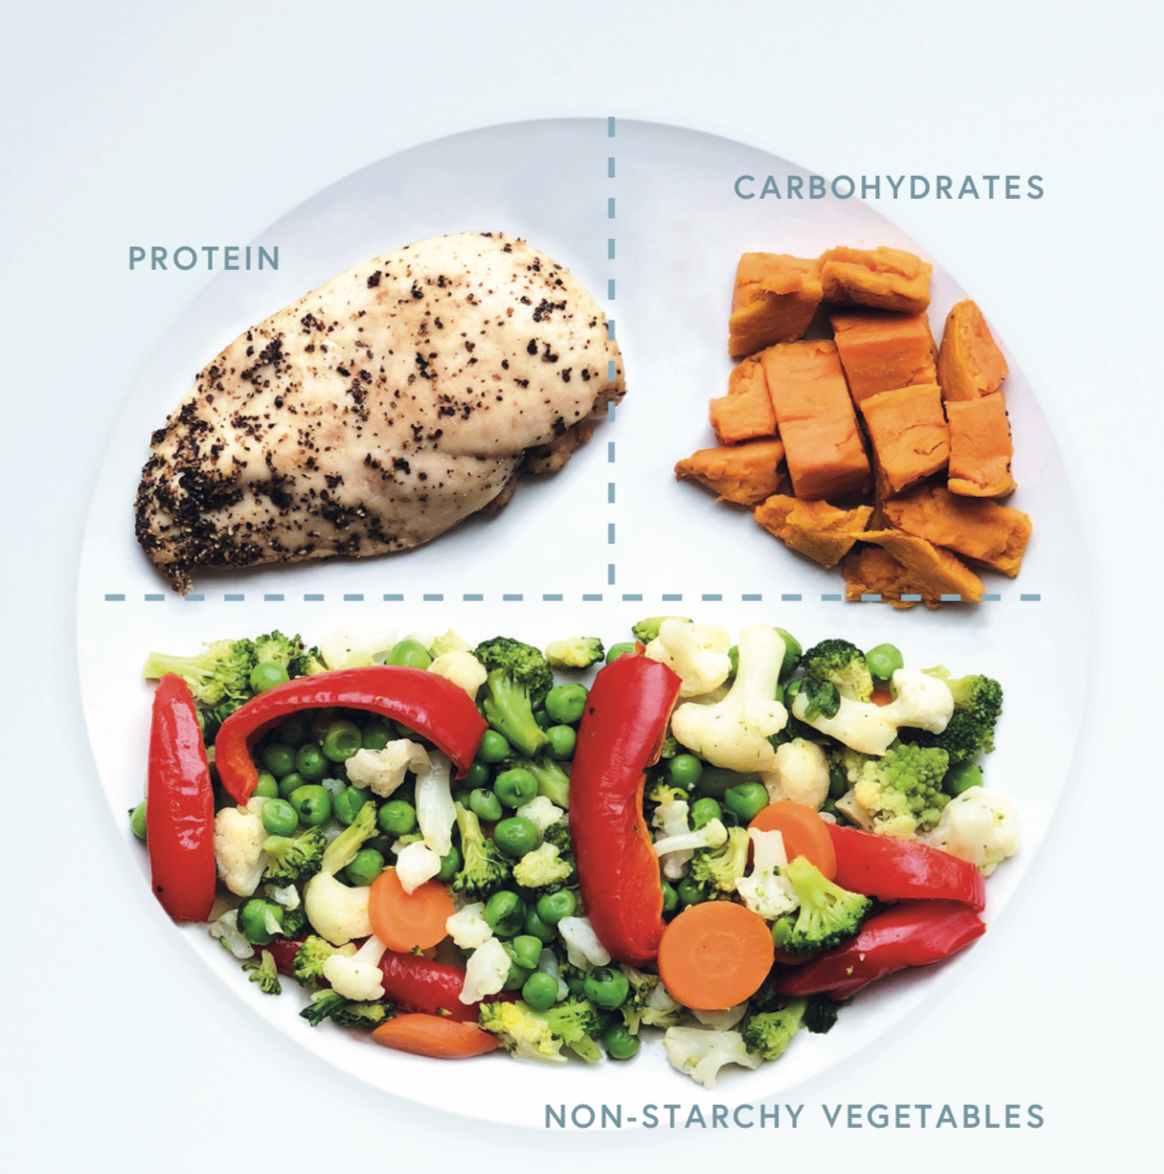 An example of a balanced plate for a carbohydrate-containing meal, including a chicken breast, ½ a baked sweet potato and 2 large handfuls of steamed non-starchy vegetables.